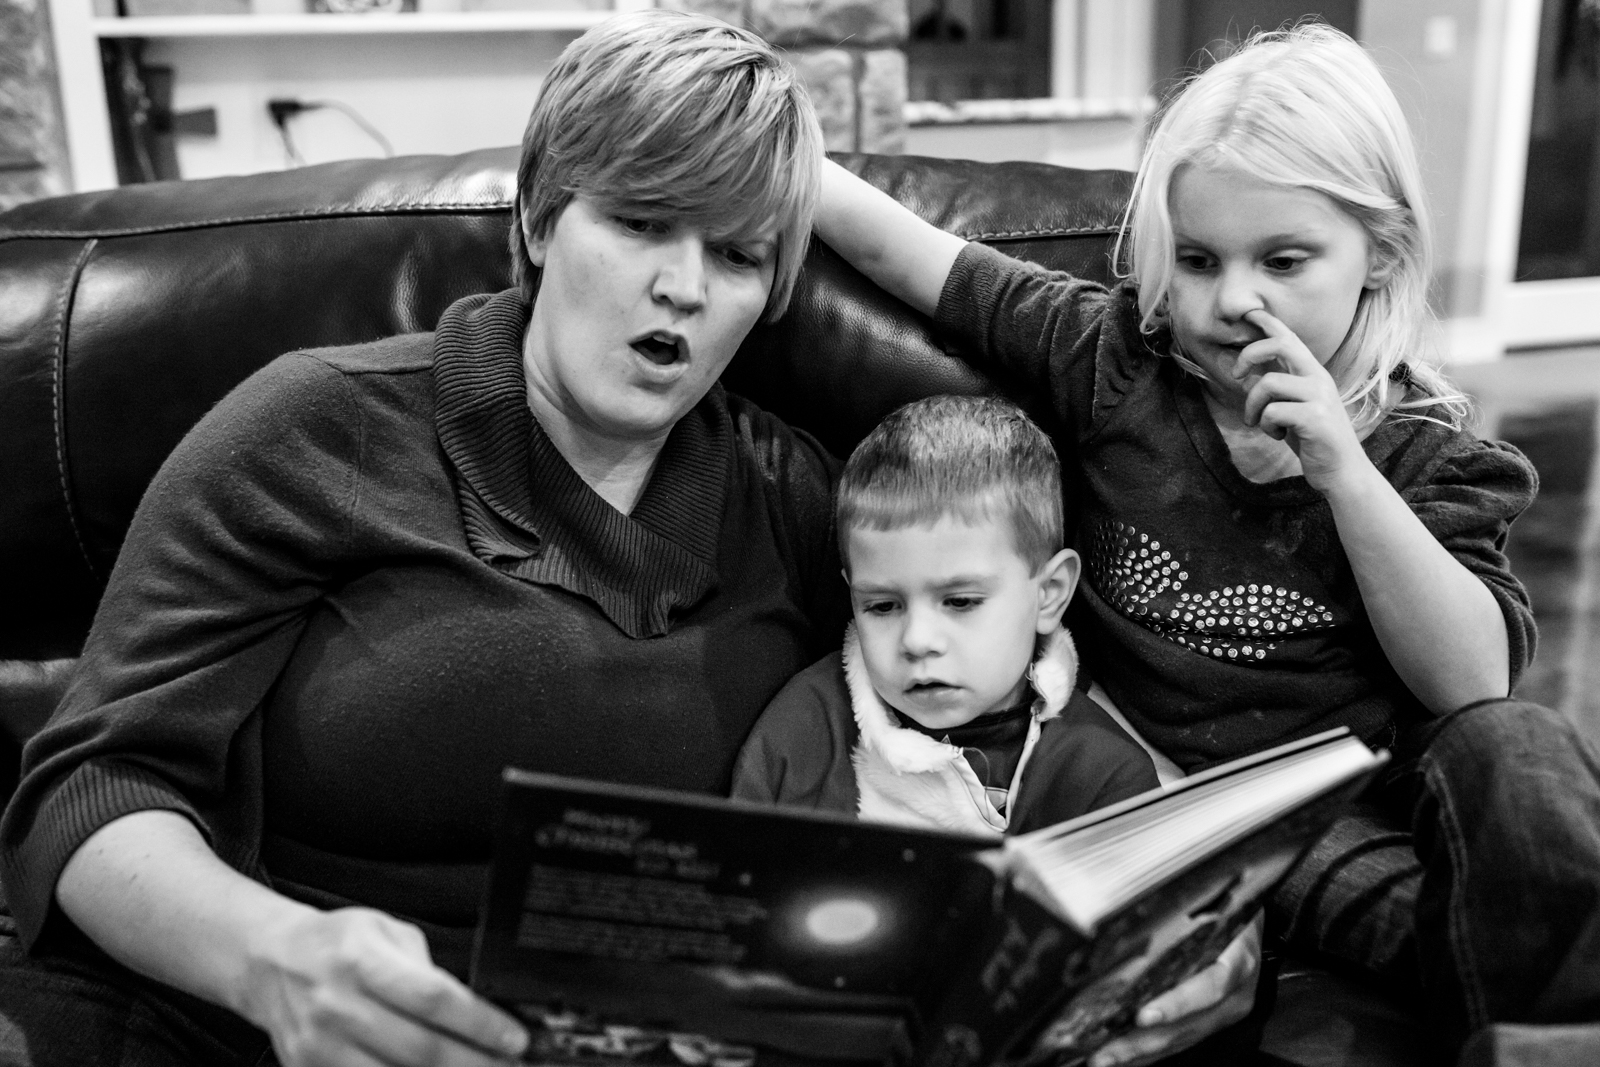 Documentary photographer Lawren Rose Photography takes a photo of a family of 3 sitting and reading a book while one child picks her nose